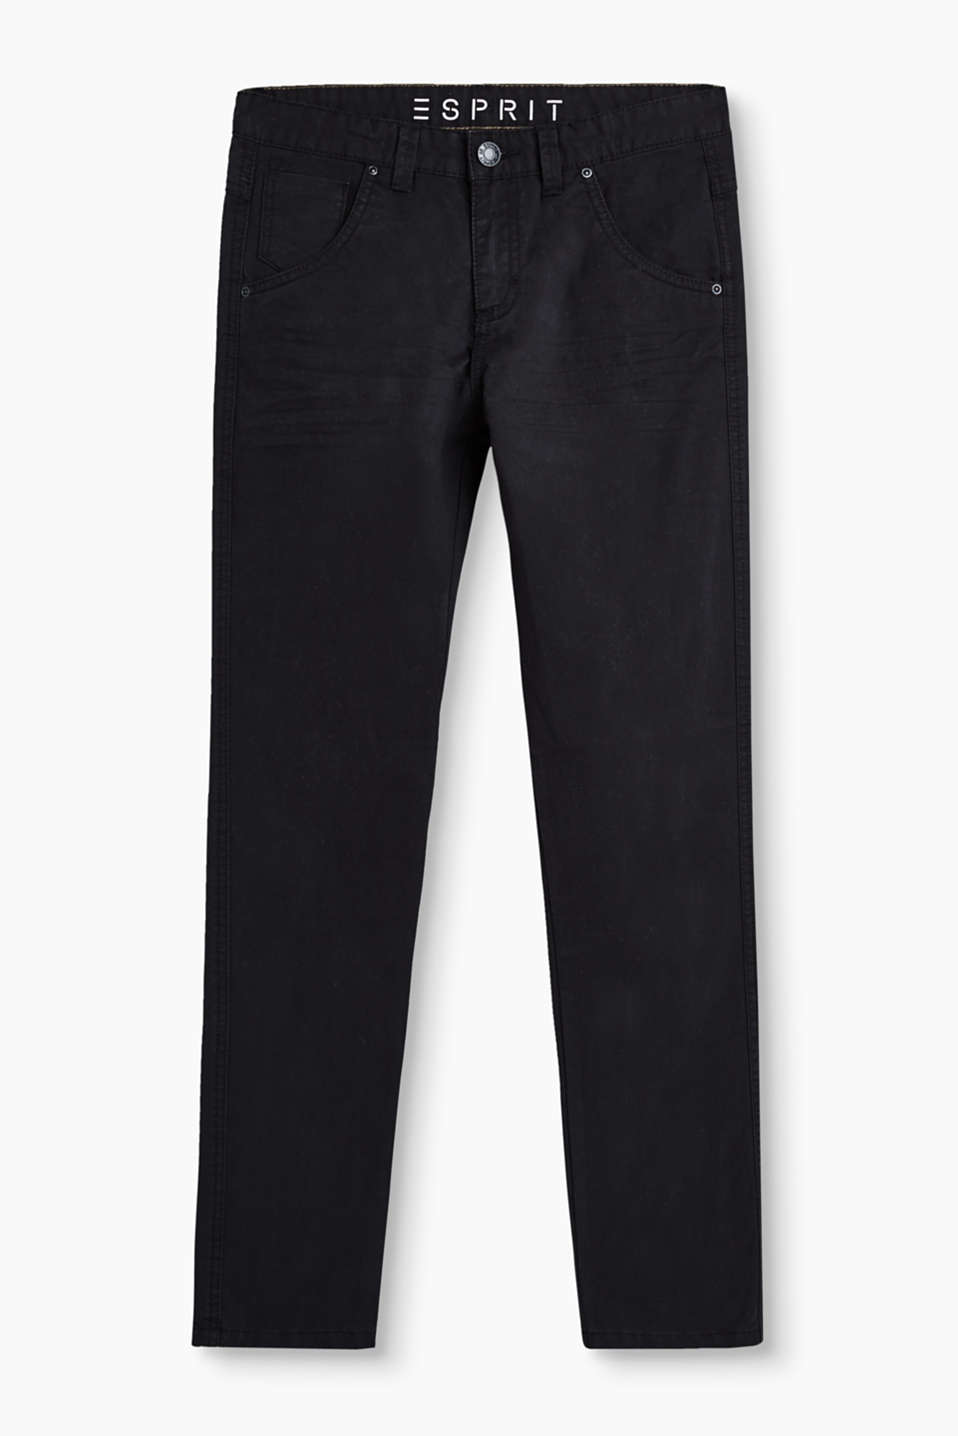 Five-pocket trousers in twill with stretch for comfort